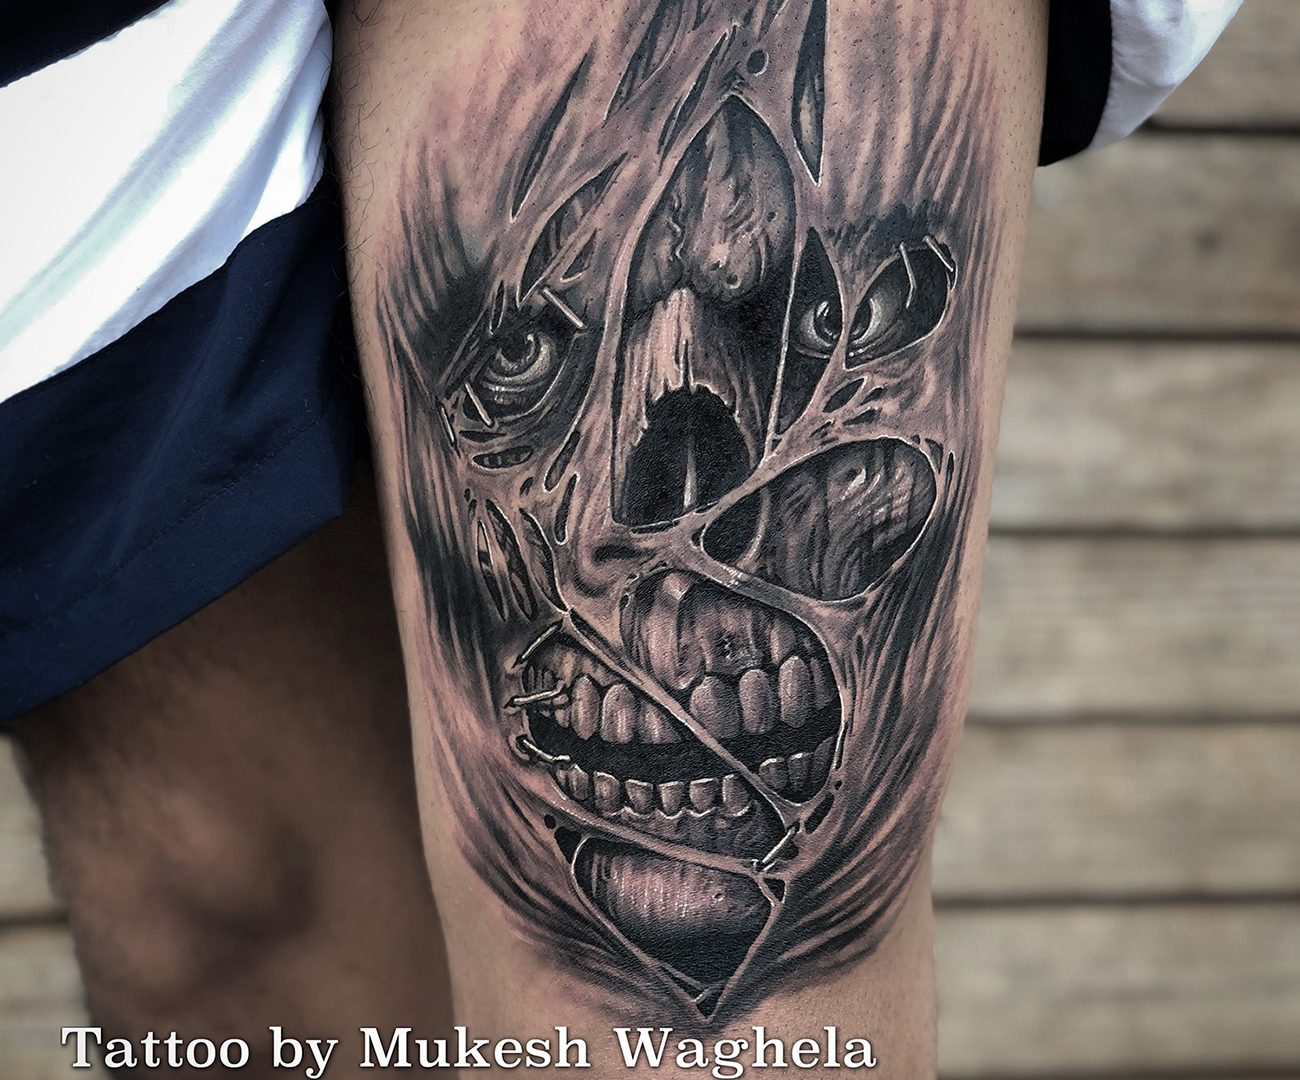 Evil skull tattoo done by Mukesh Waghela at Moksha Tattoo Studio Goa India